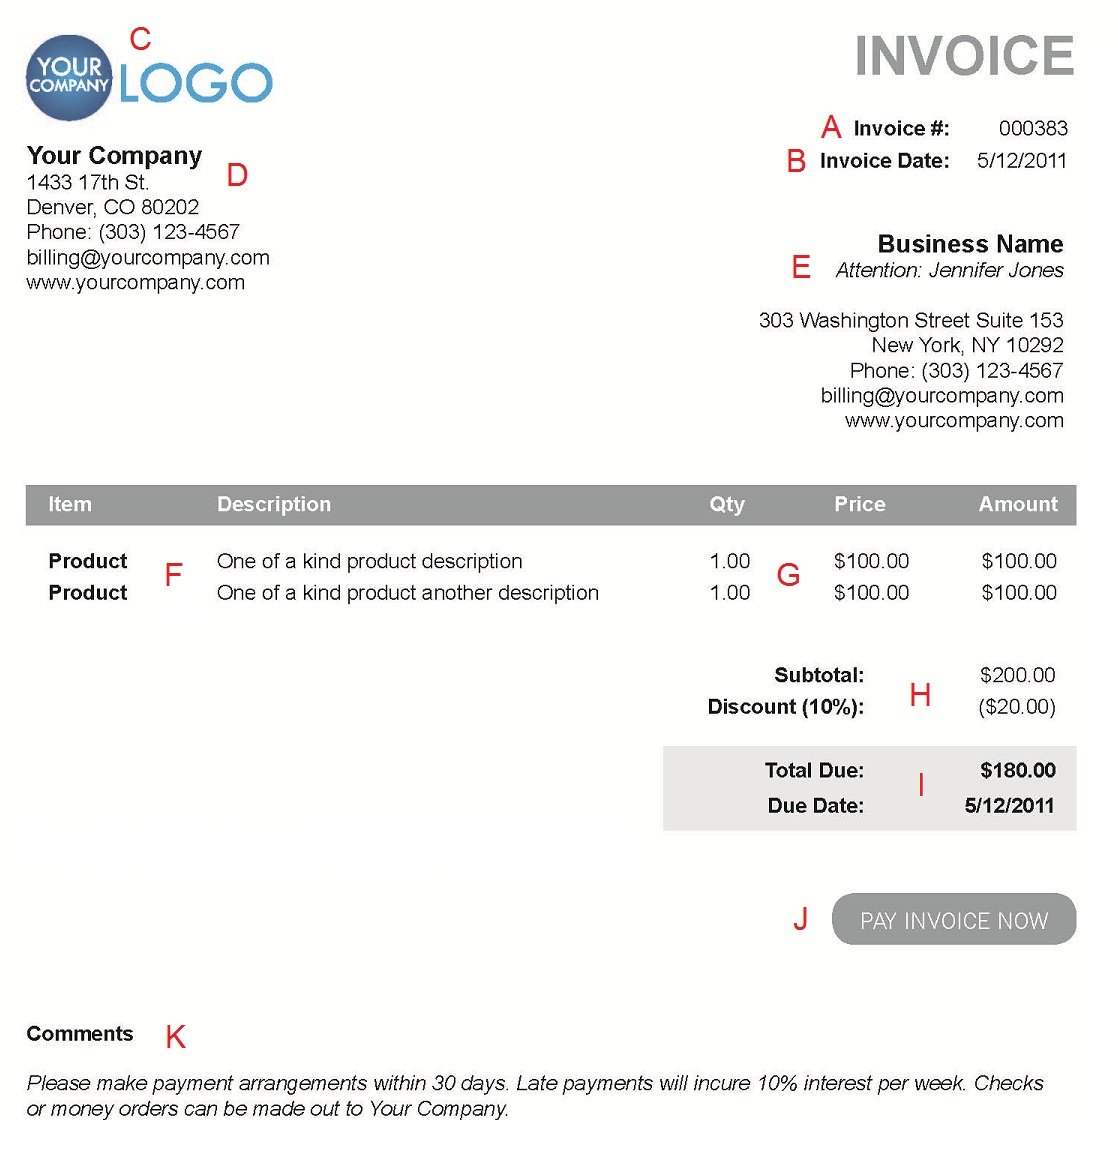 Coolmathgamesus  Personable The  Different Sections Of An Electronic Payment Invoice With Interesting A  With Delightful Proof Of Receipt Letter Also Where Is The Tracking Number On A Ups Receipt In Addition Bpa Free Thermal Receipt Paper And Sample Receipt For Payment Received As Well As Meteor Parking Receipts Additionally Receipt For Egg Salad From Paysimplecom With Coolmathgamesus  Interesting The  Different Sections Of An Electronic Payment Invoice With Delightful A  And Personable Proof Of Receipt Letter Also Where Is The Tracking Number On A Ups Receipt In Addition Bpa Free Thermal Receipt Paper From Paysimplecom